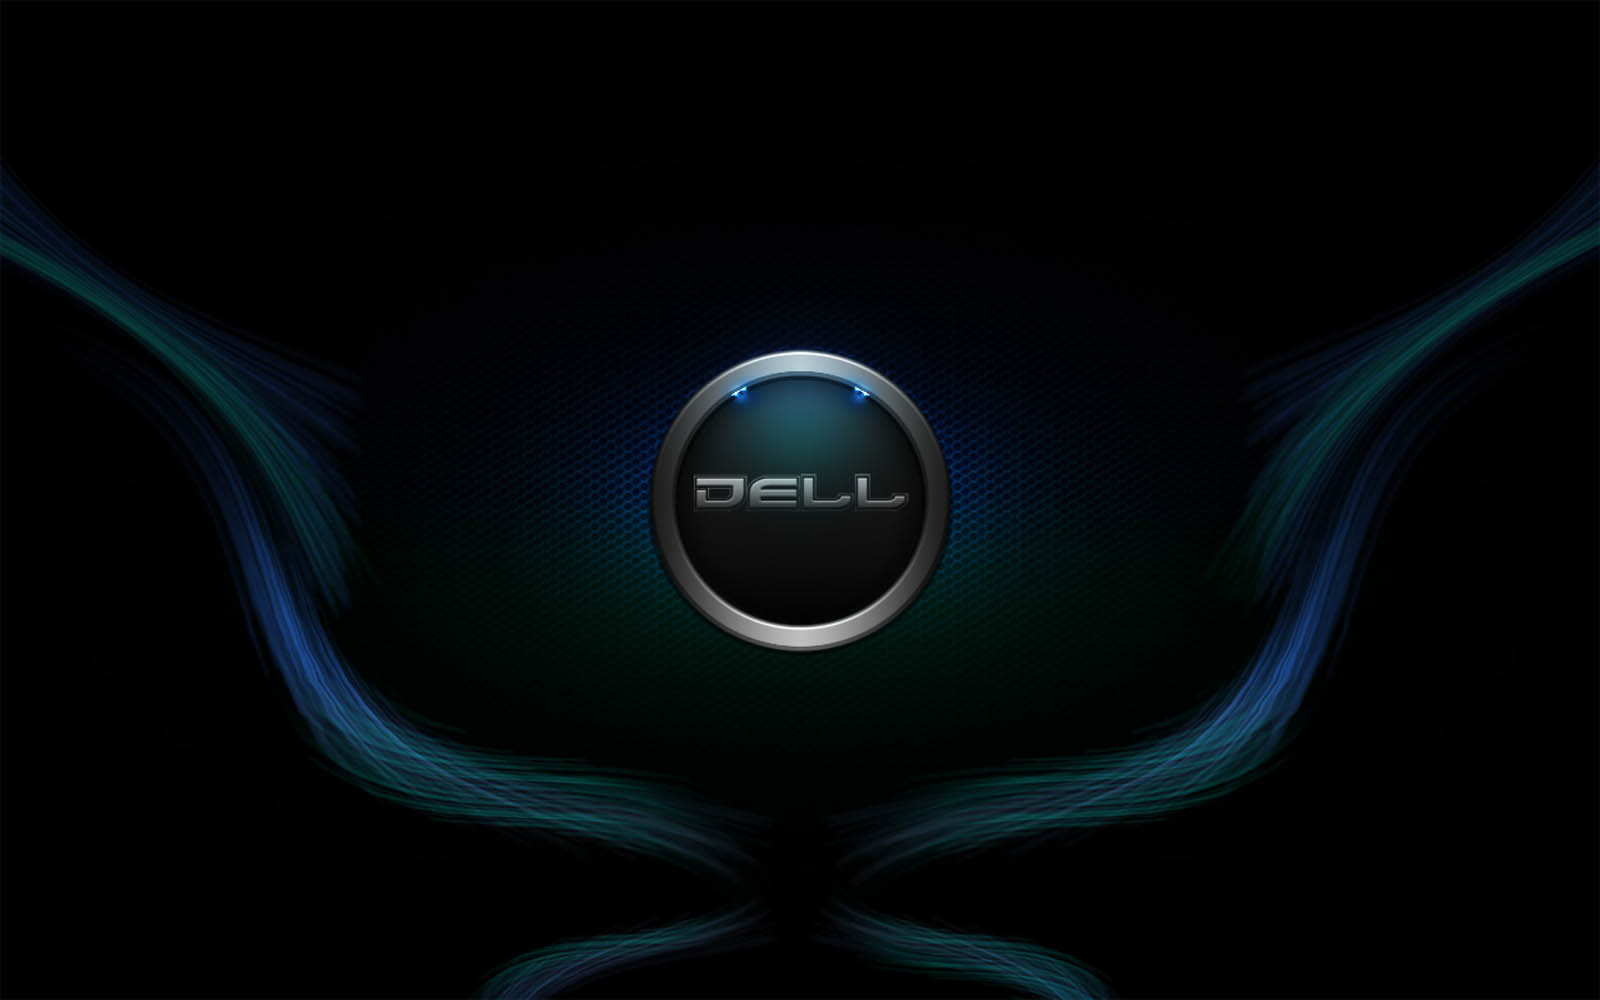 dell computers wallpaper logo - photo #18